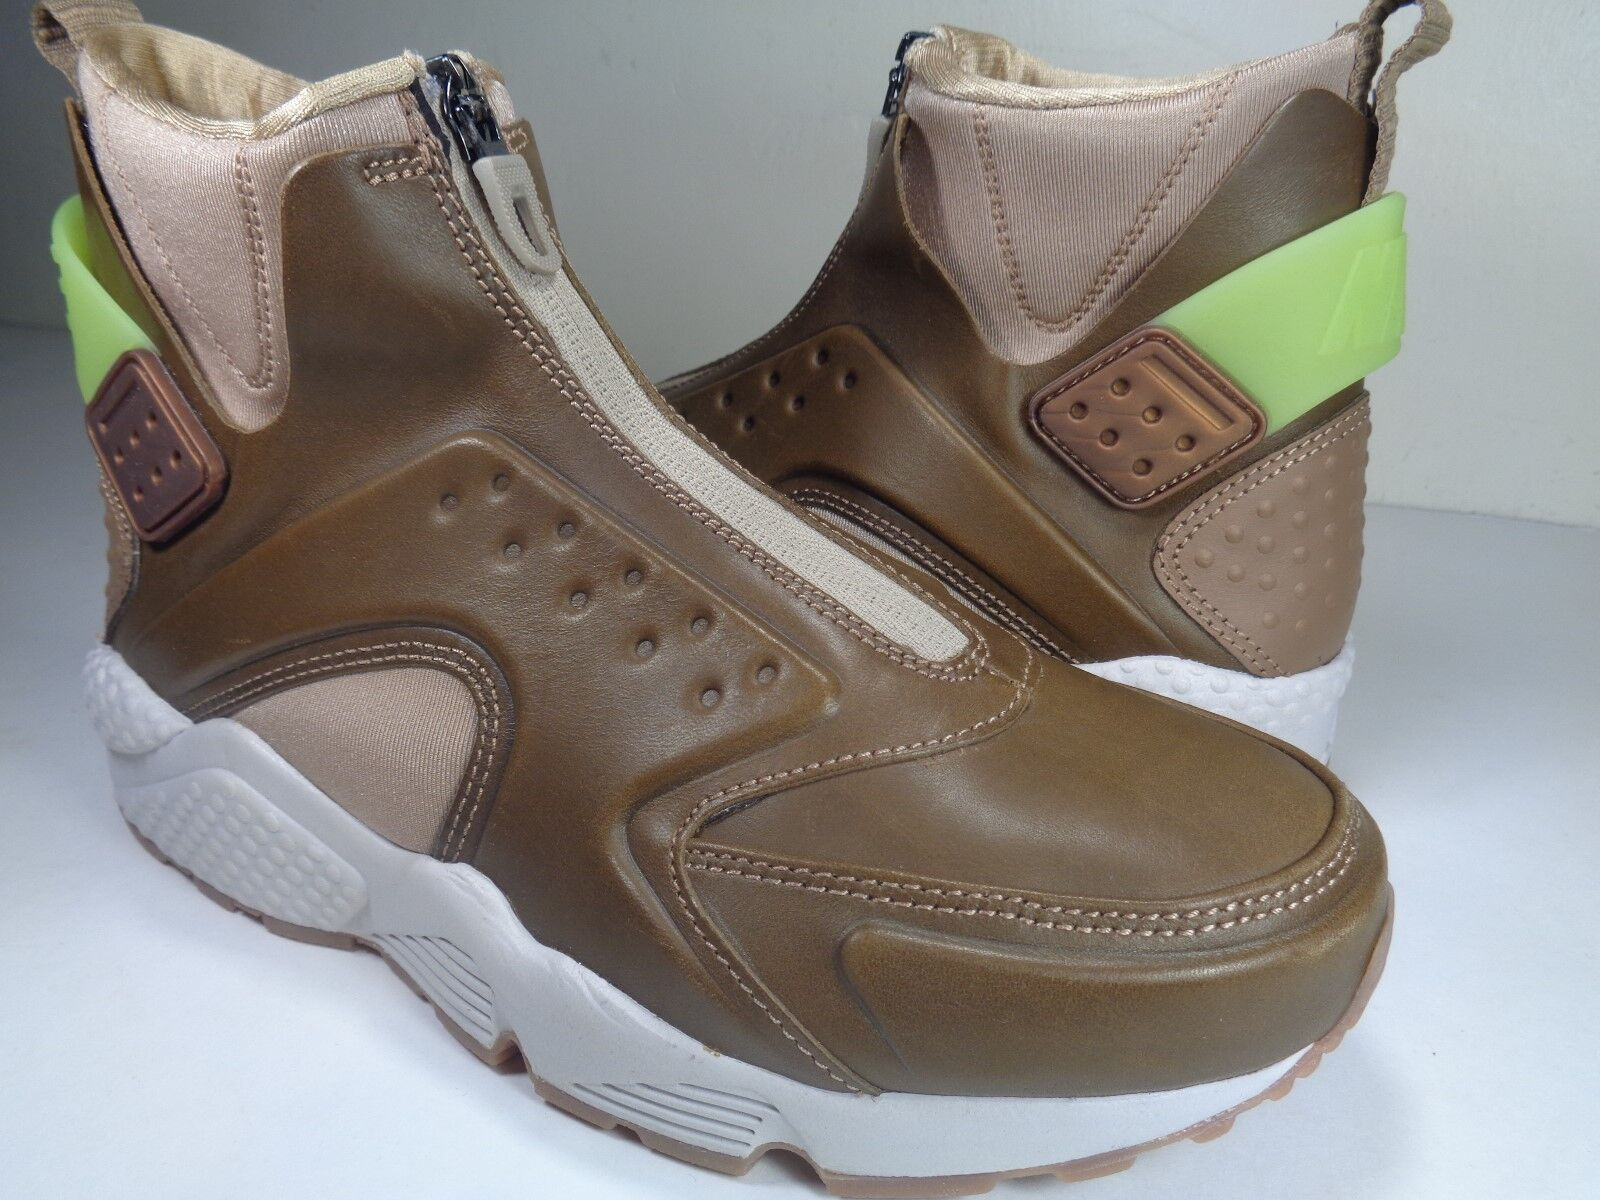 Womens Nike Air Huarache Mid Metallic Coin Green Light Brown Price reduction New shoes for men and women, limited time discount